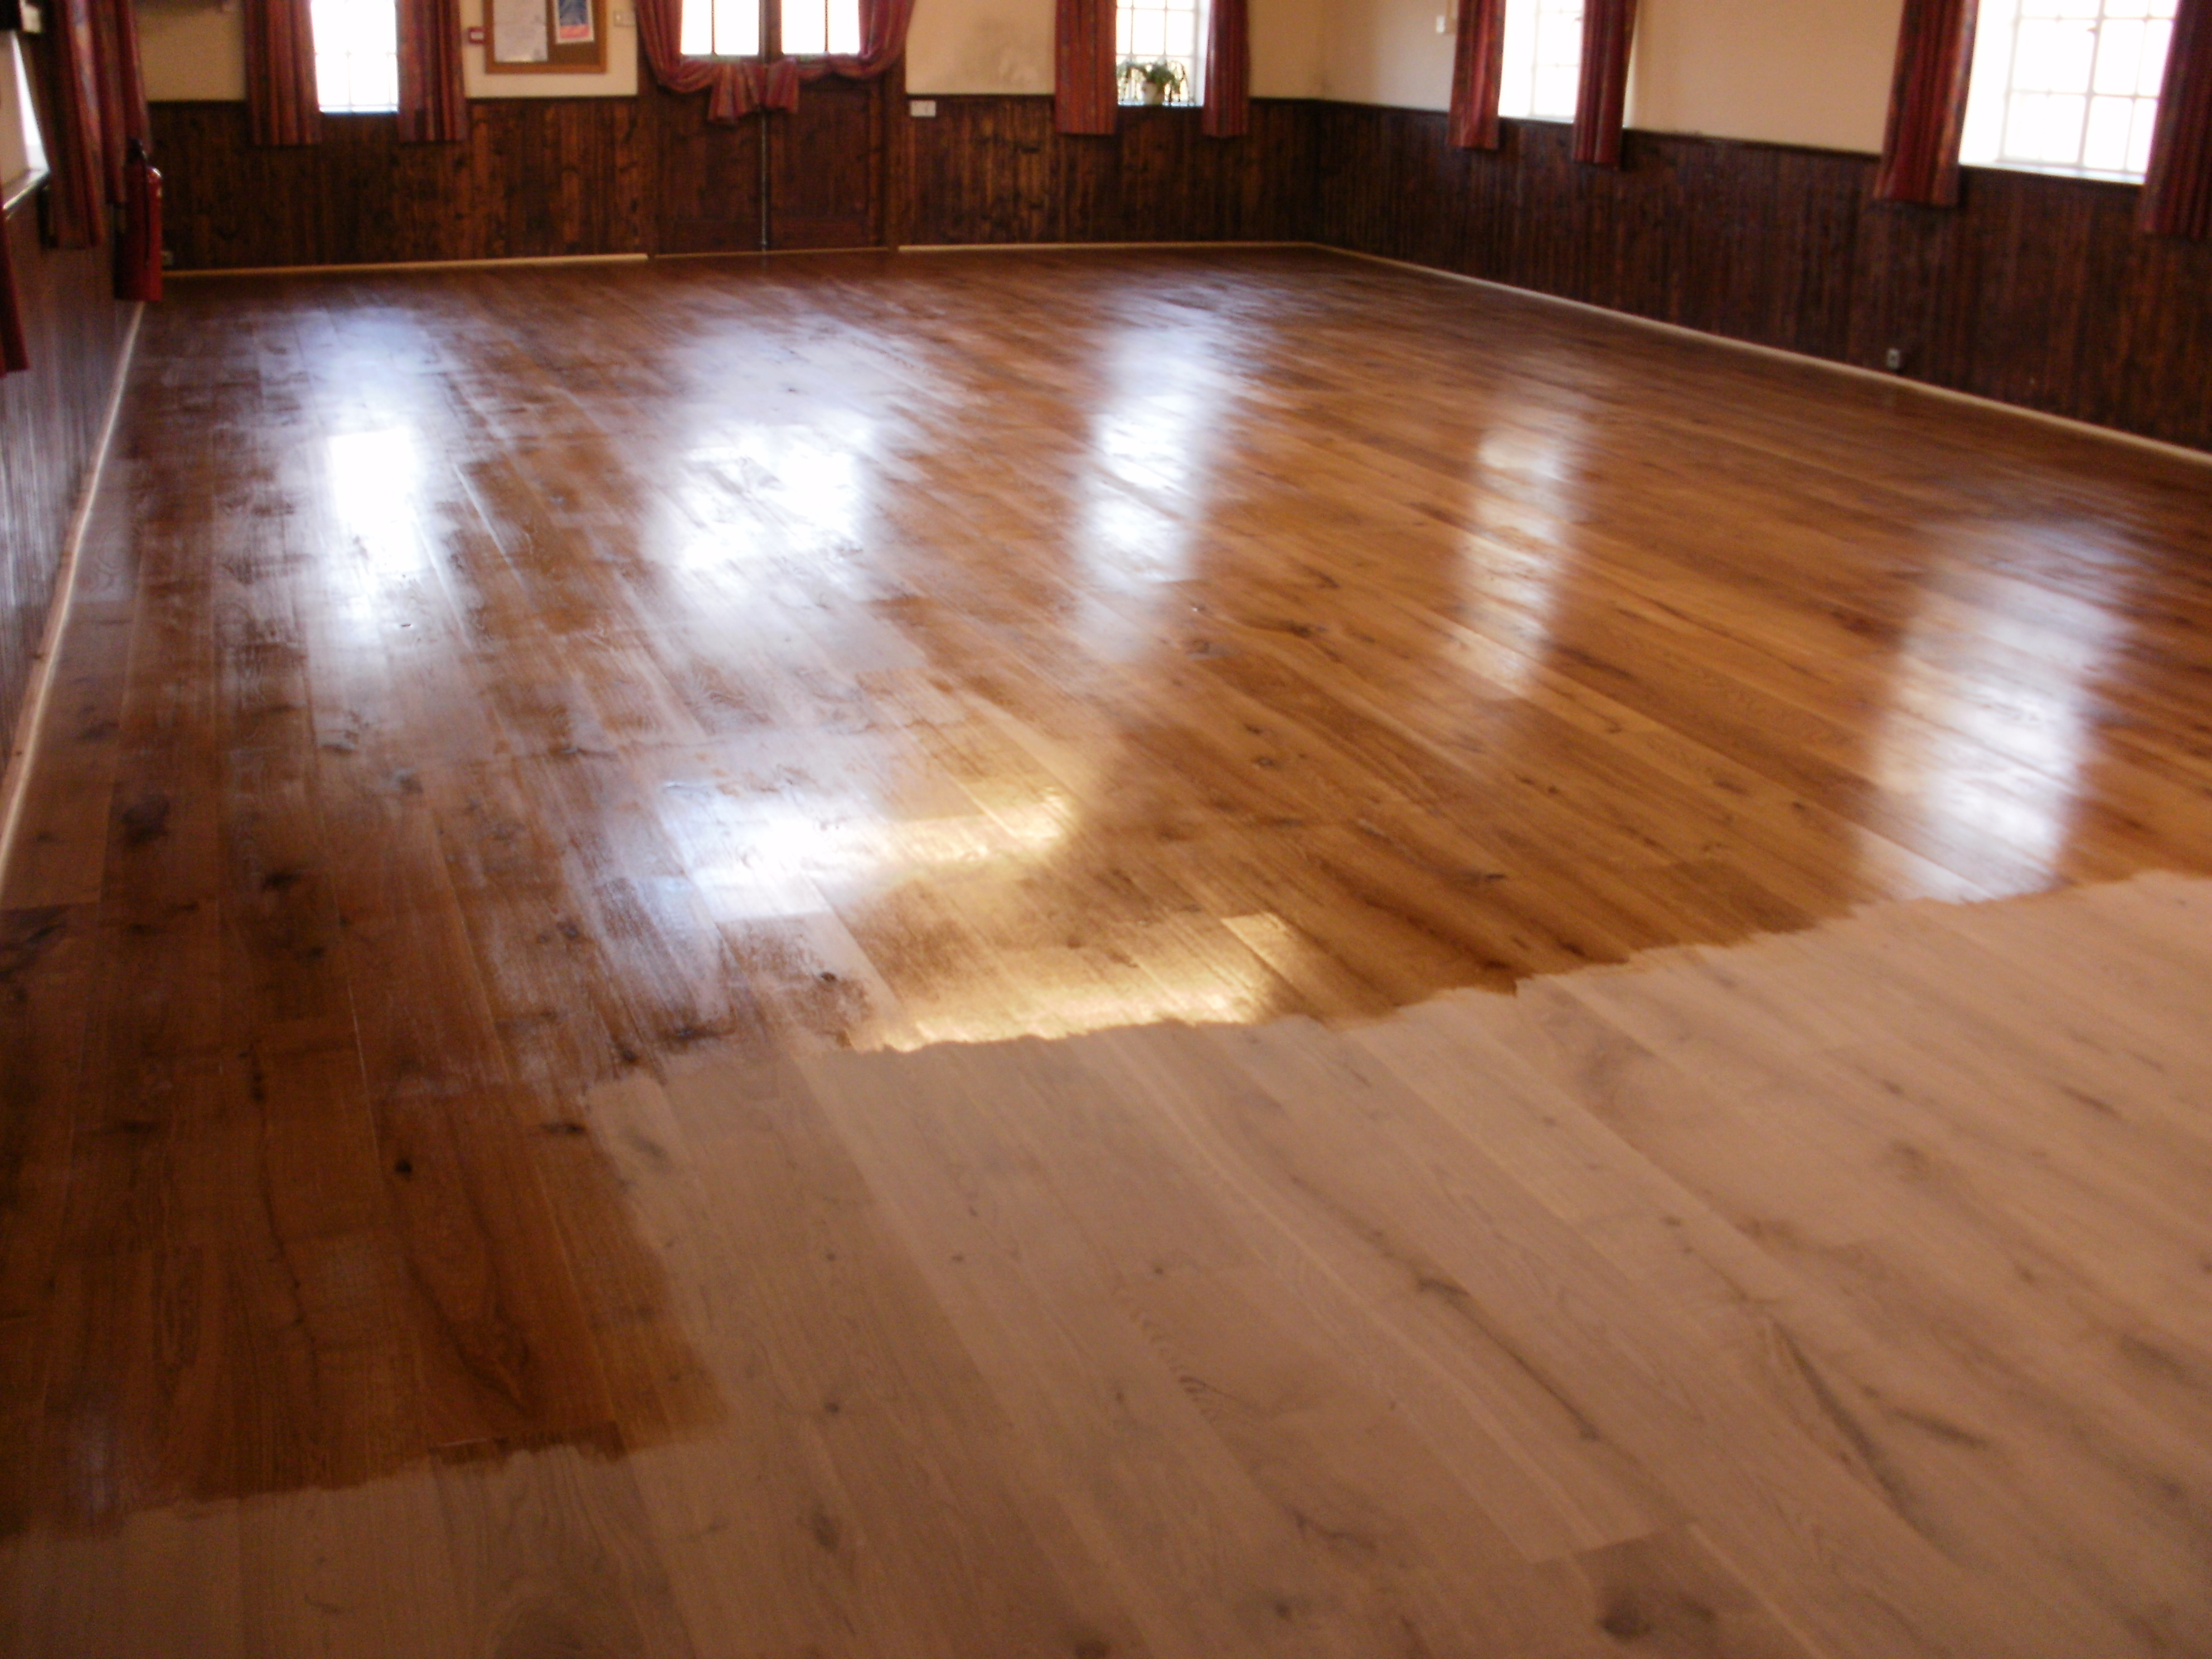 A clean and polished floor